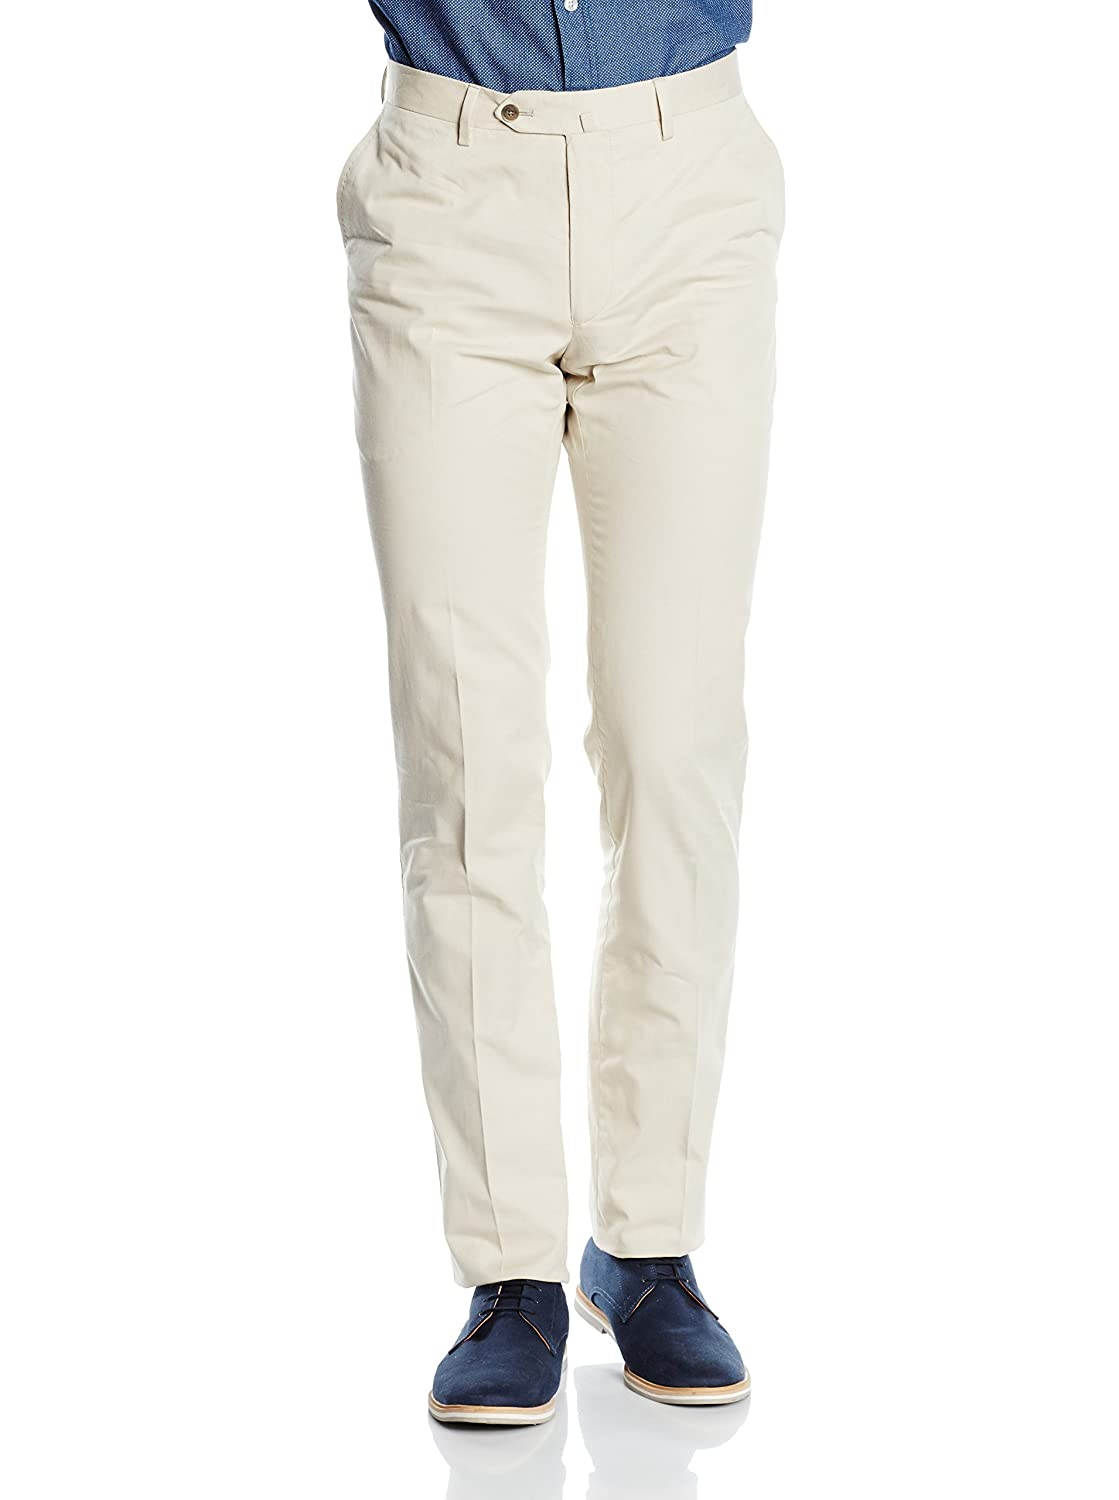 Hackett London Pantalón Beige ES 31